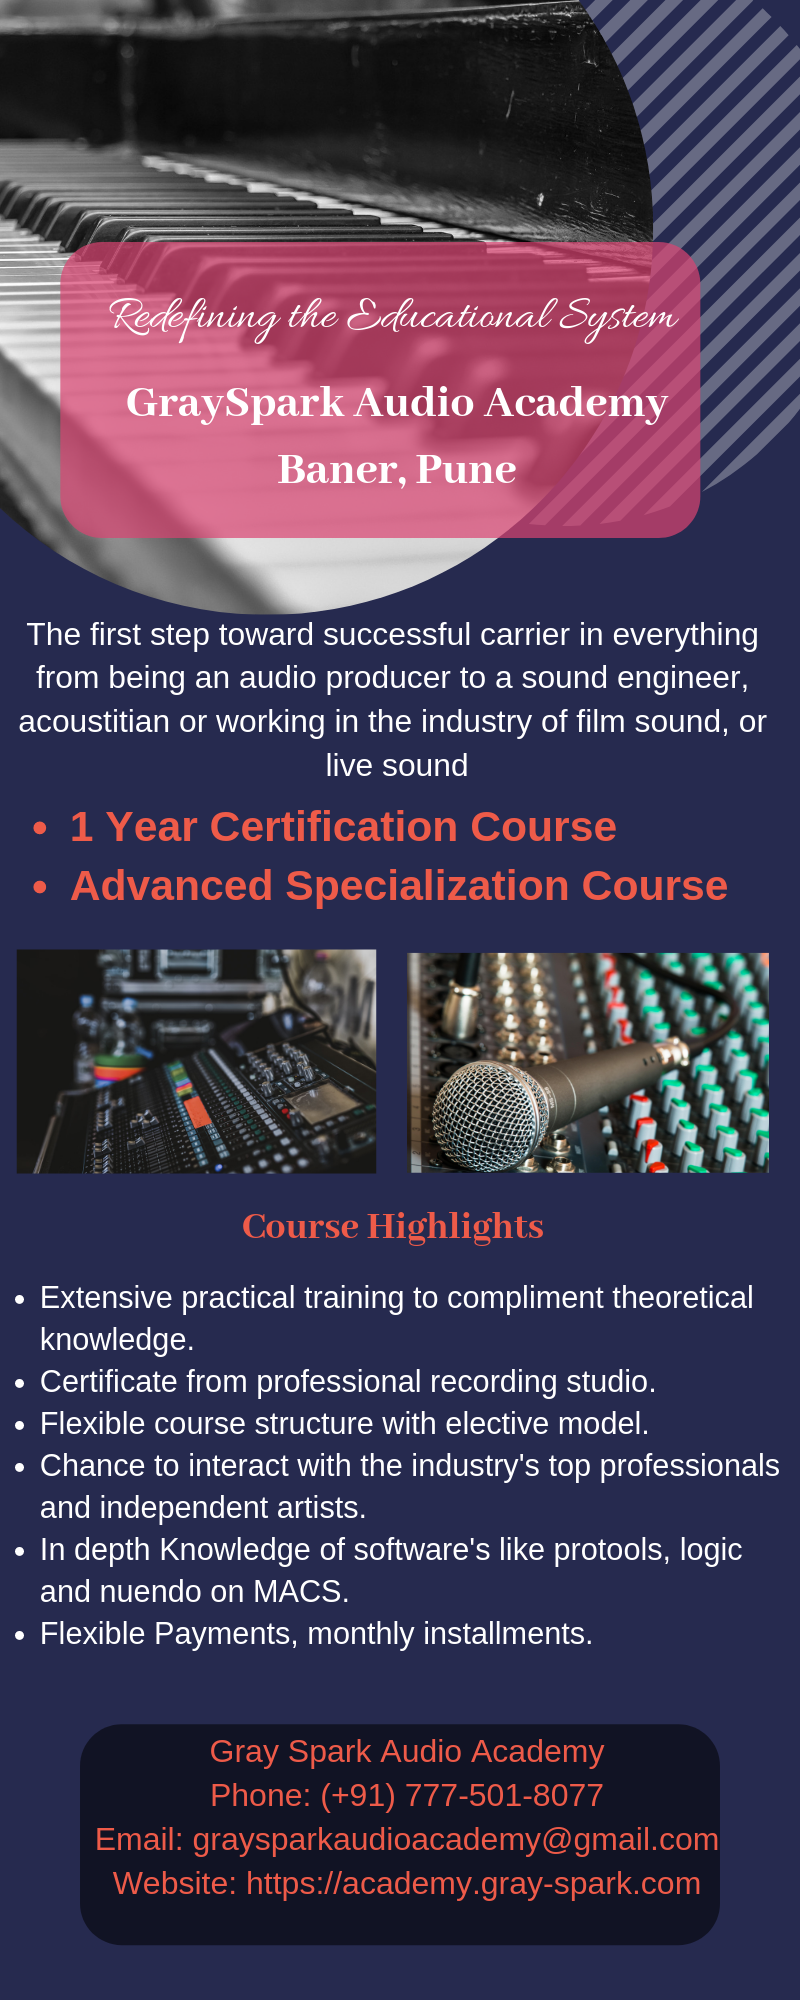 Gray Spark Audio is Sound Engineering Academy located in